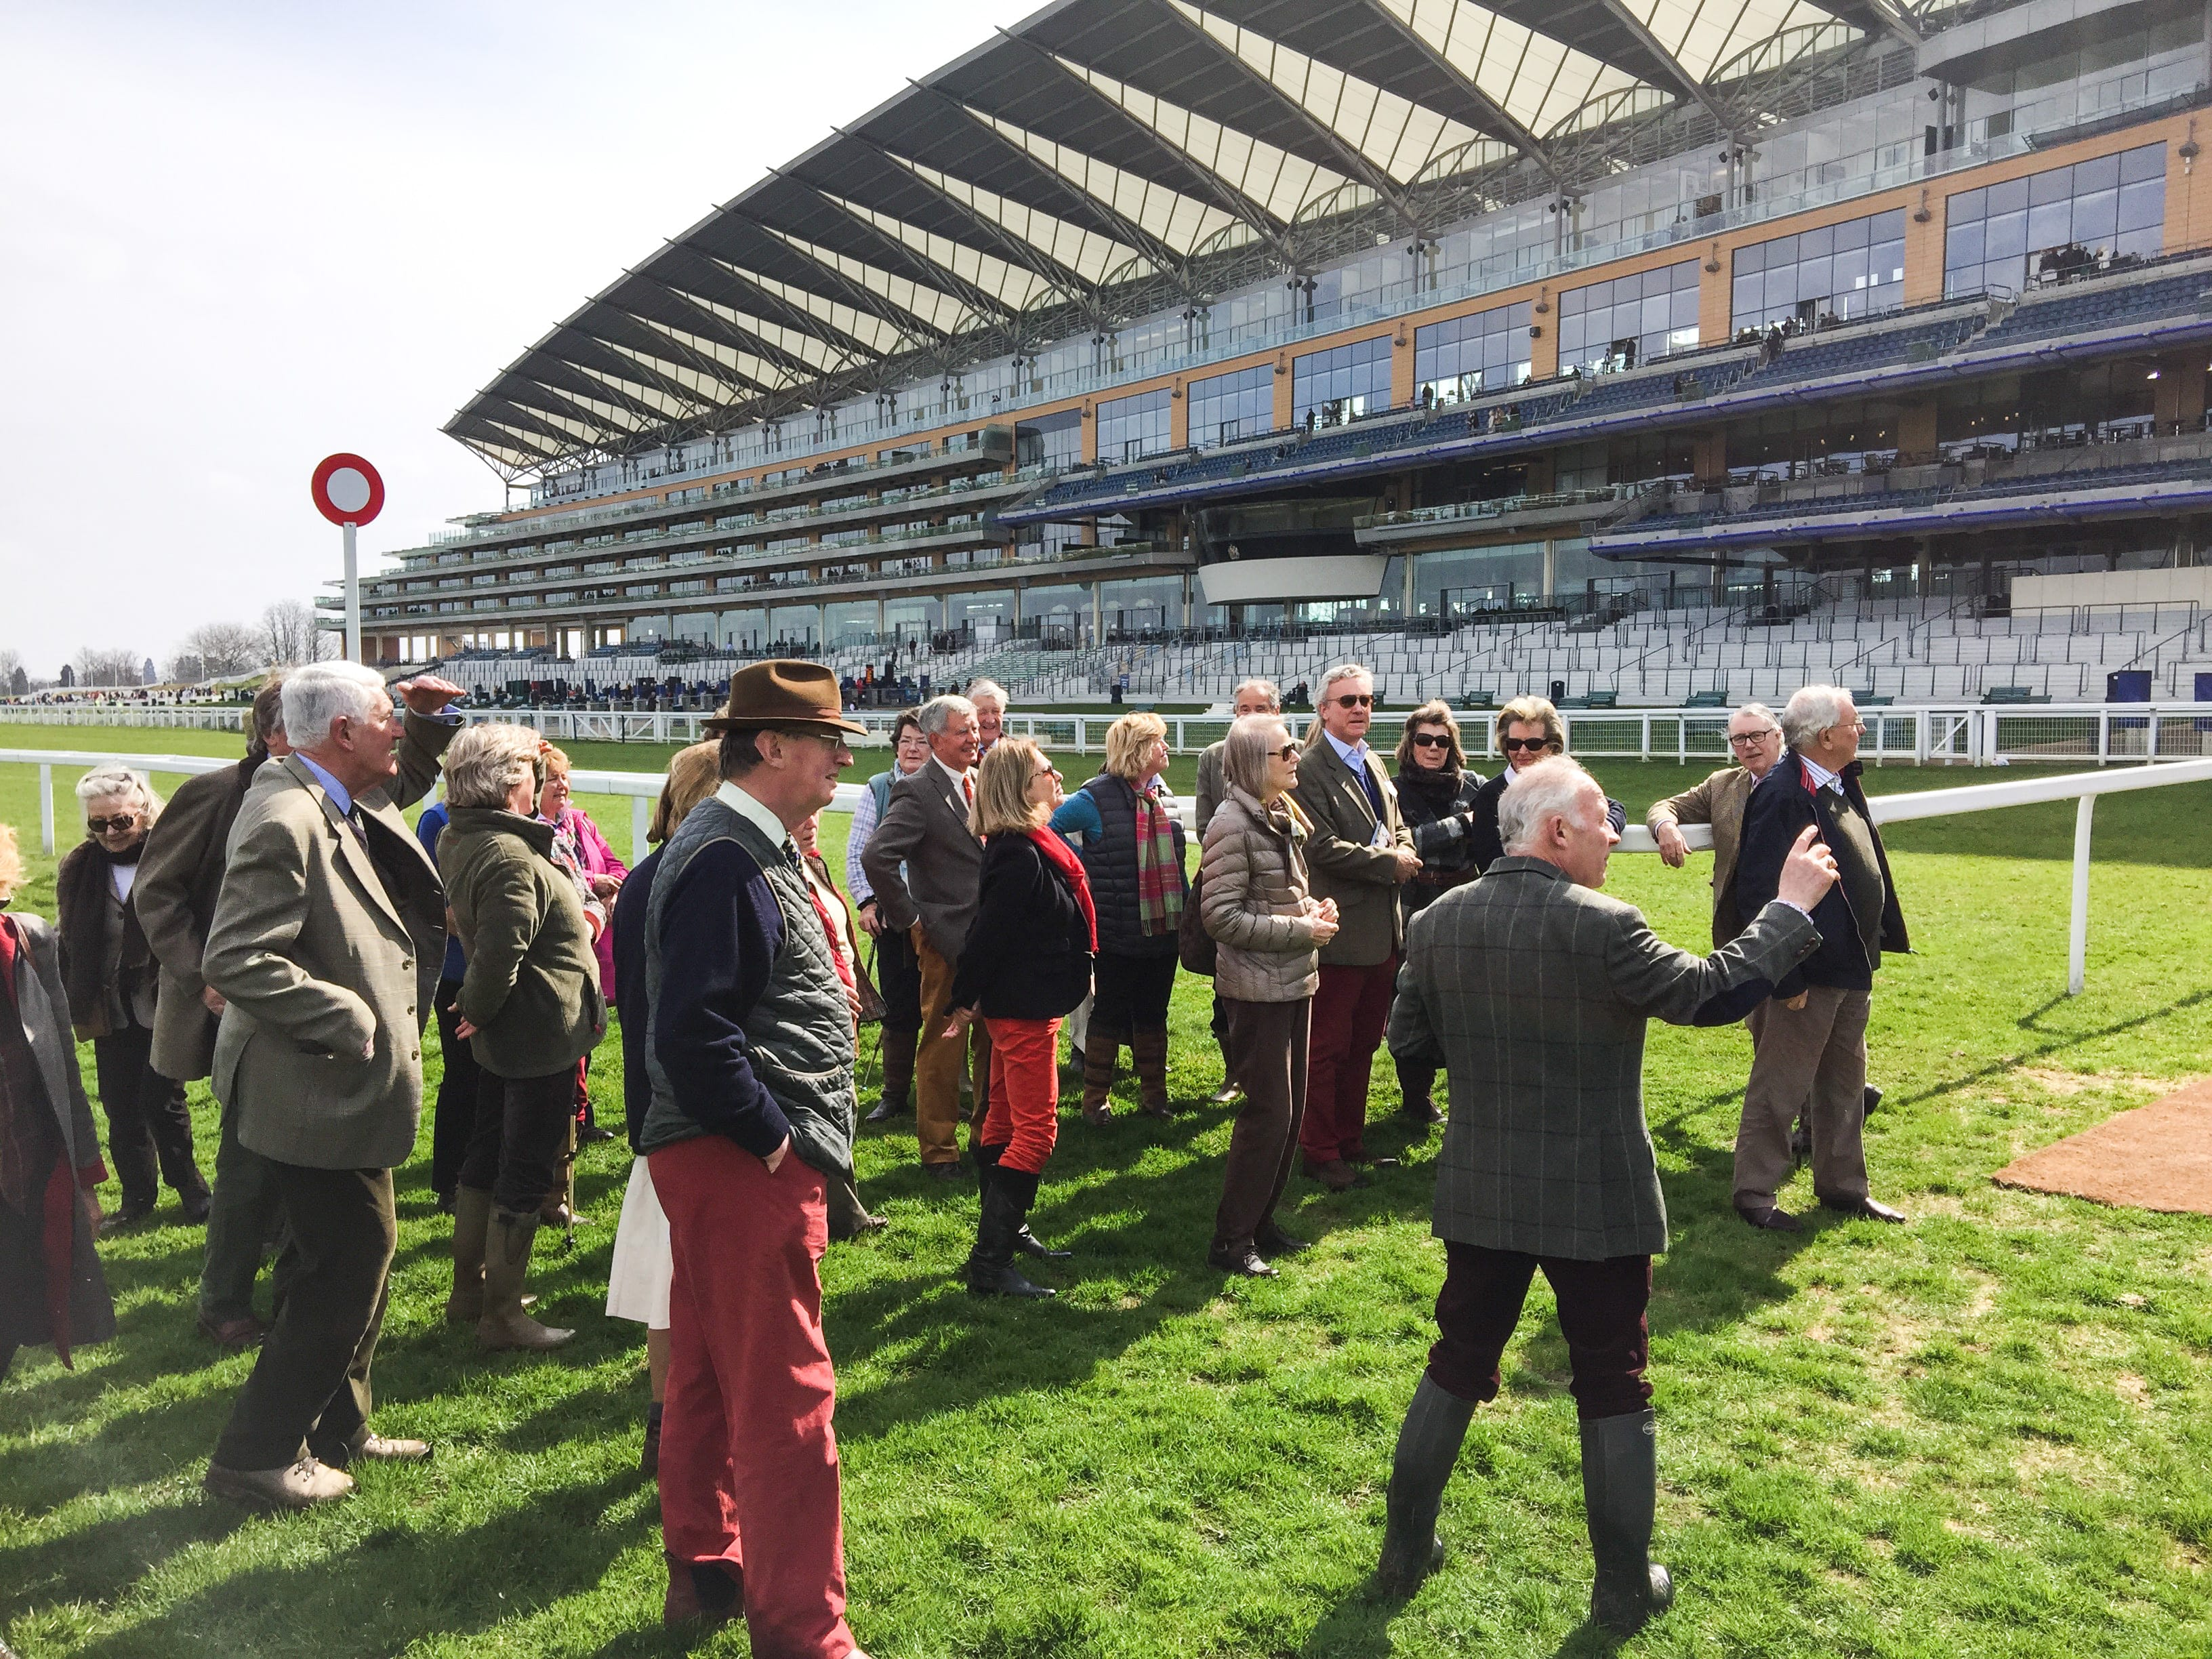 Walk of the course at Ascot